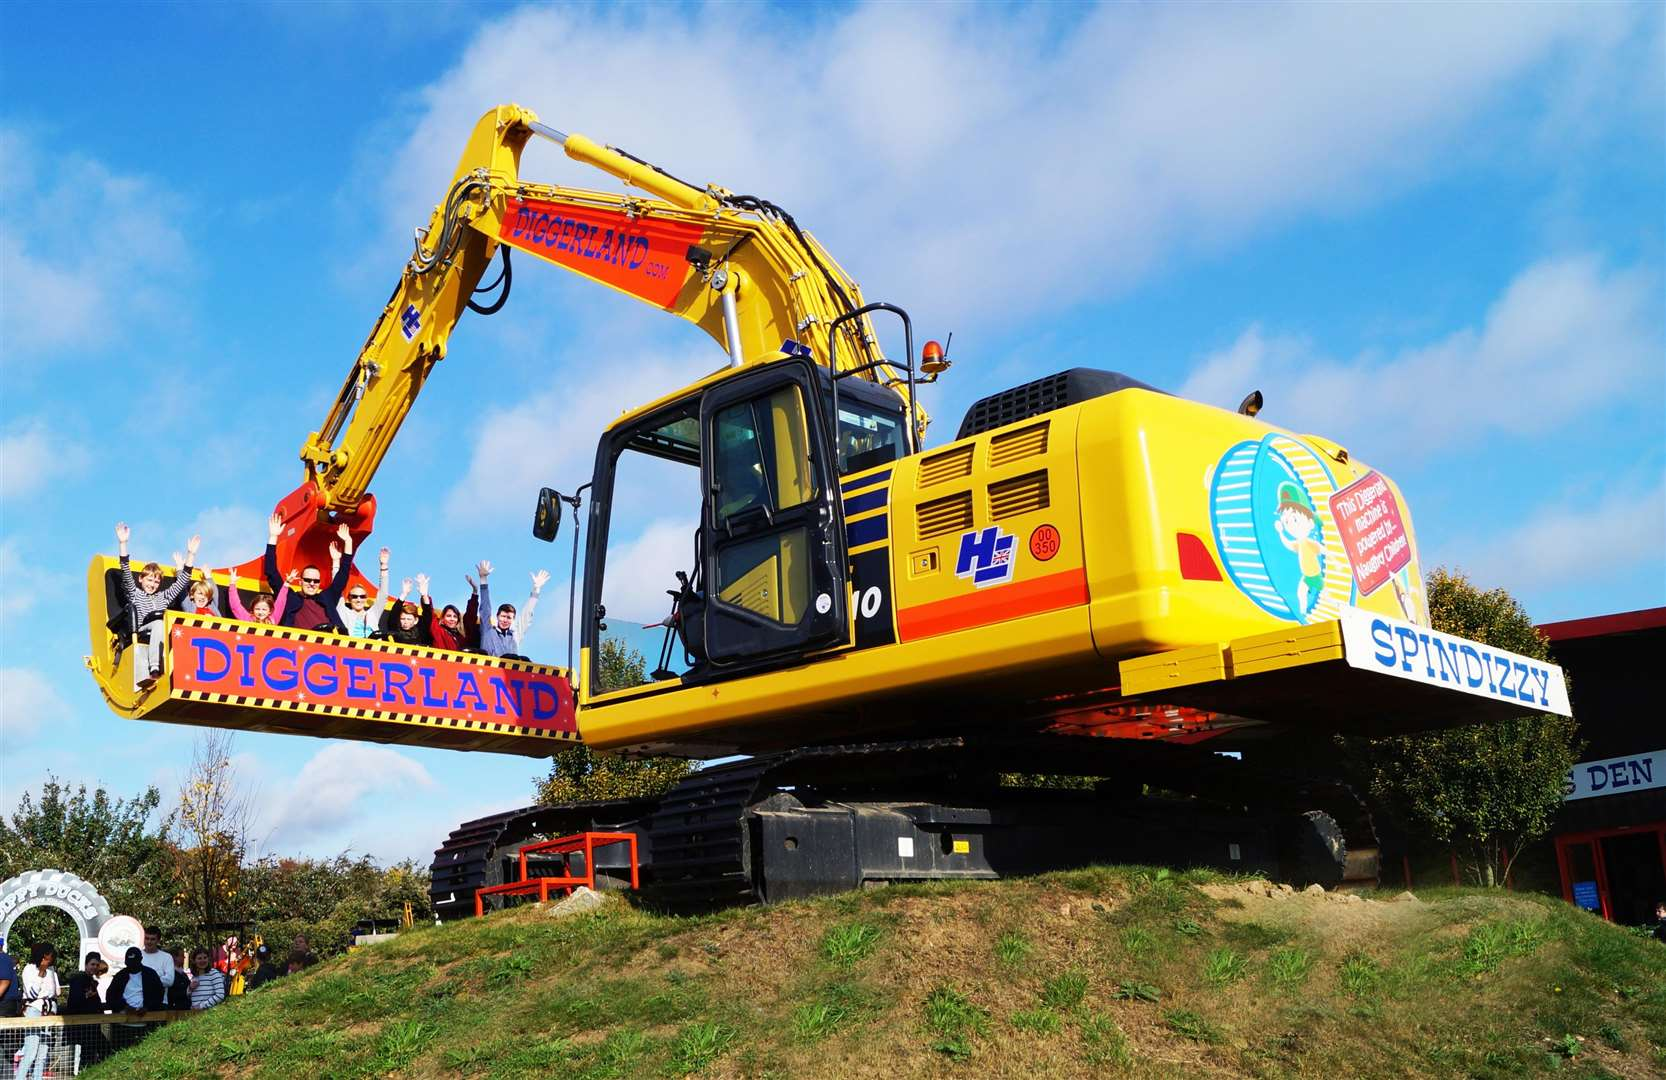 Diggerland in Strood will be part of the ticket giveaway